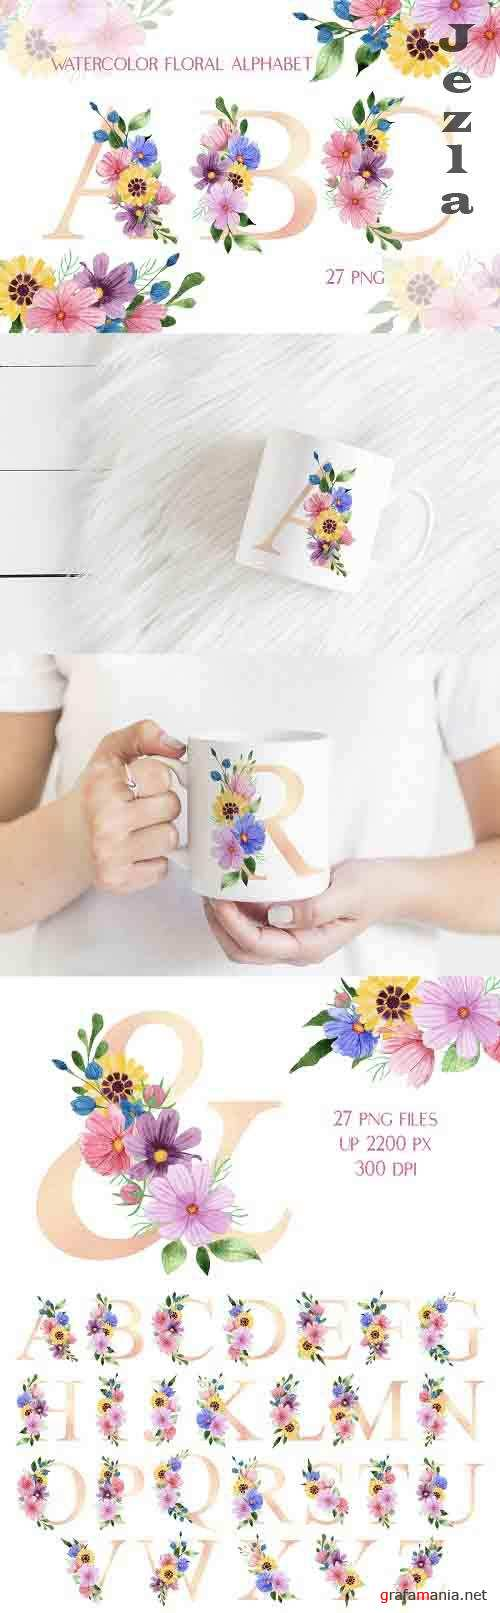 Watercolor Alphabet Meadow Flowers Pearl Pink Letters - 1359277